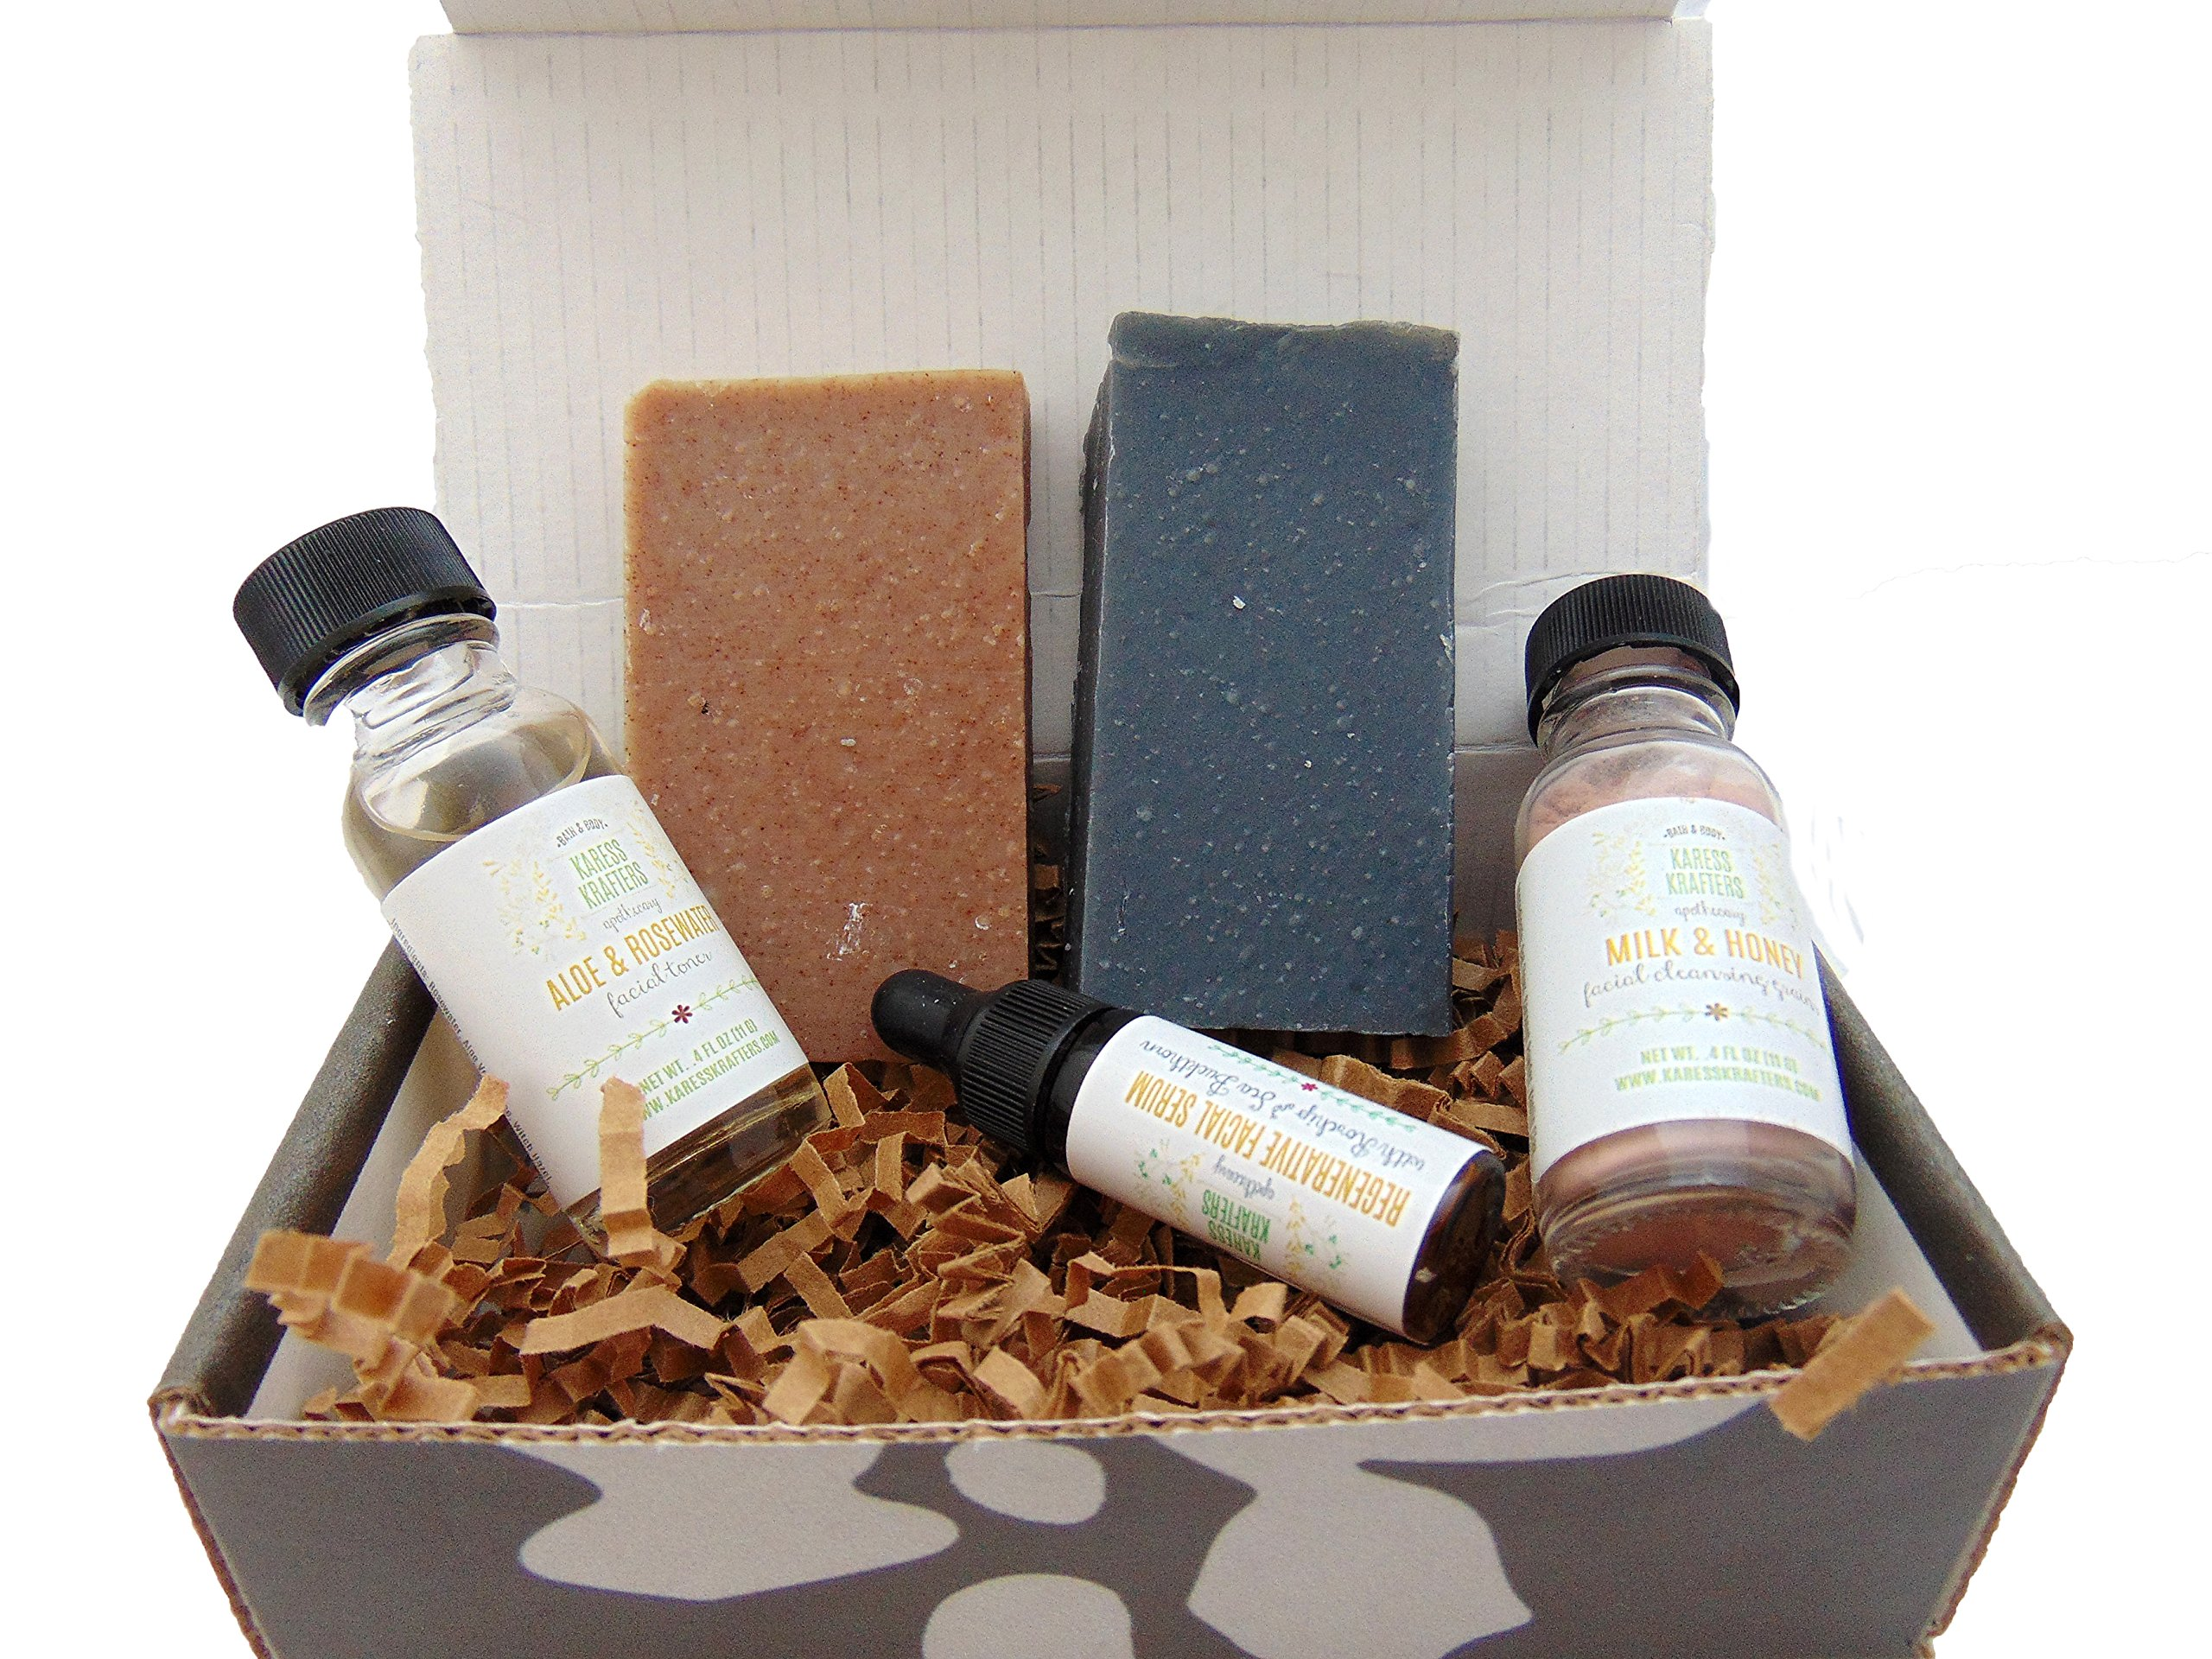 Facial Care Sampler, Skin Care, Activated Charcoal Soap, Rosehip & Avocado Soap, Sea Buckthorn Serum, Rose Water & Aloe Toner by Karess Krafters Apothecary